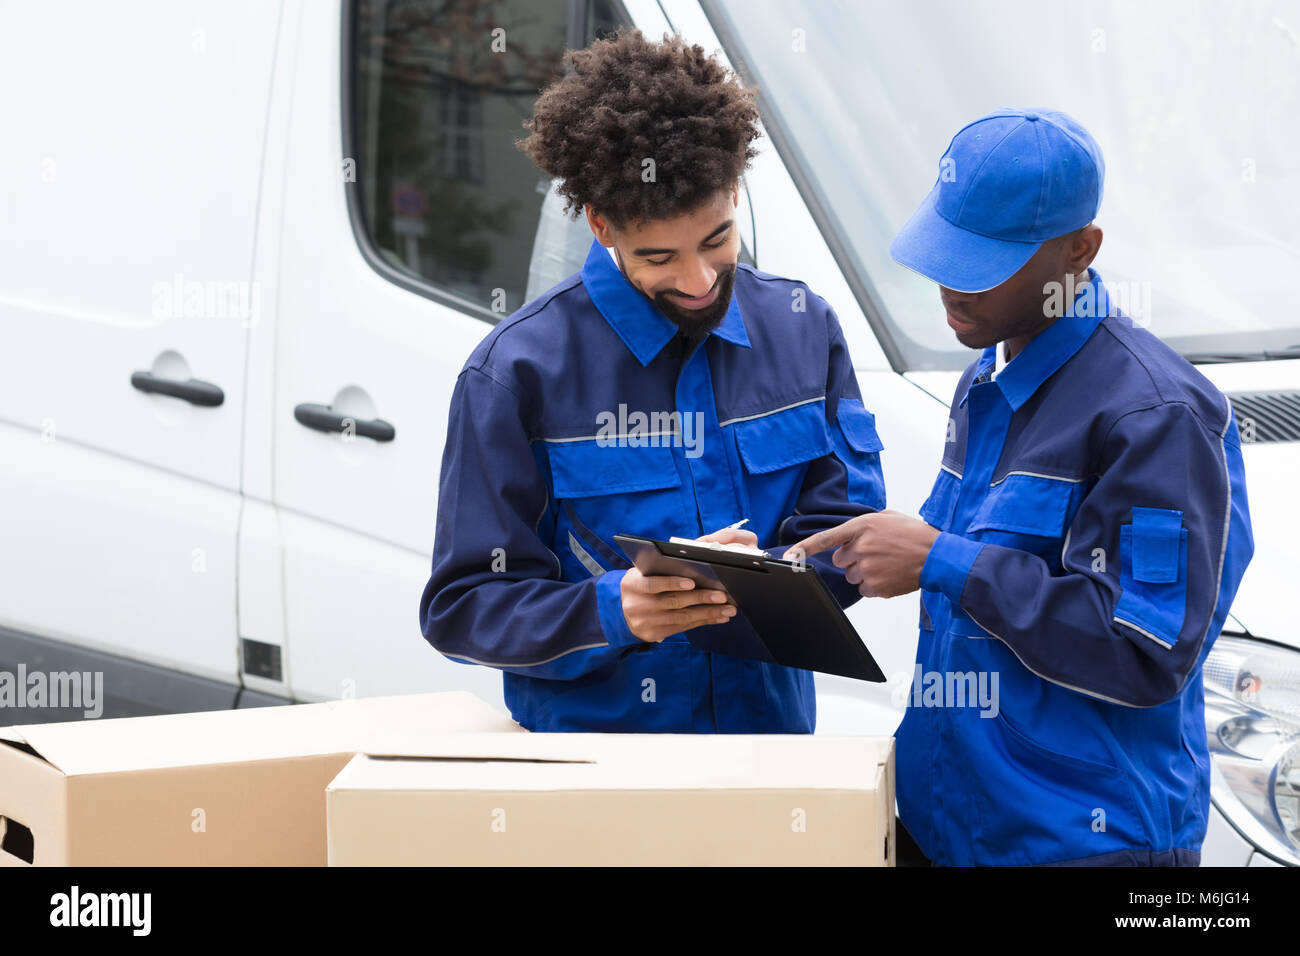 Delivery Man Writing On The Clipboard Over The Cardboard Boxes Standing By The Truck - Stock Image